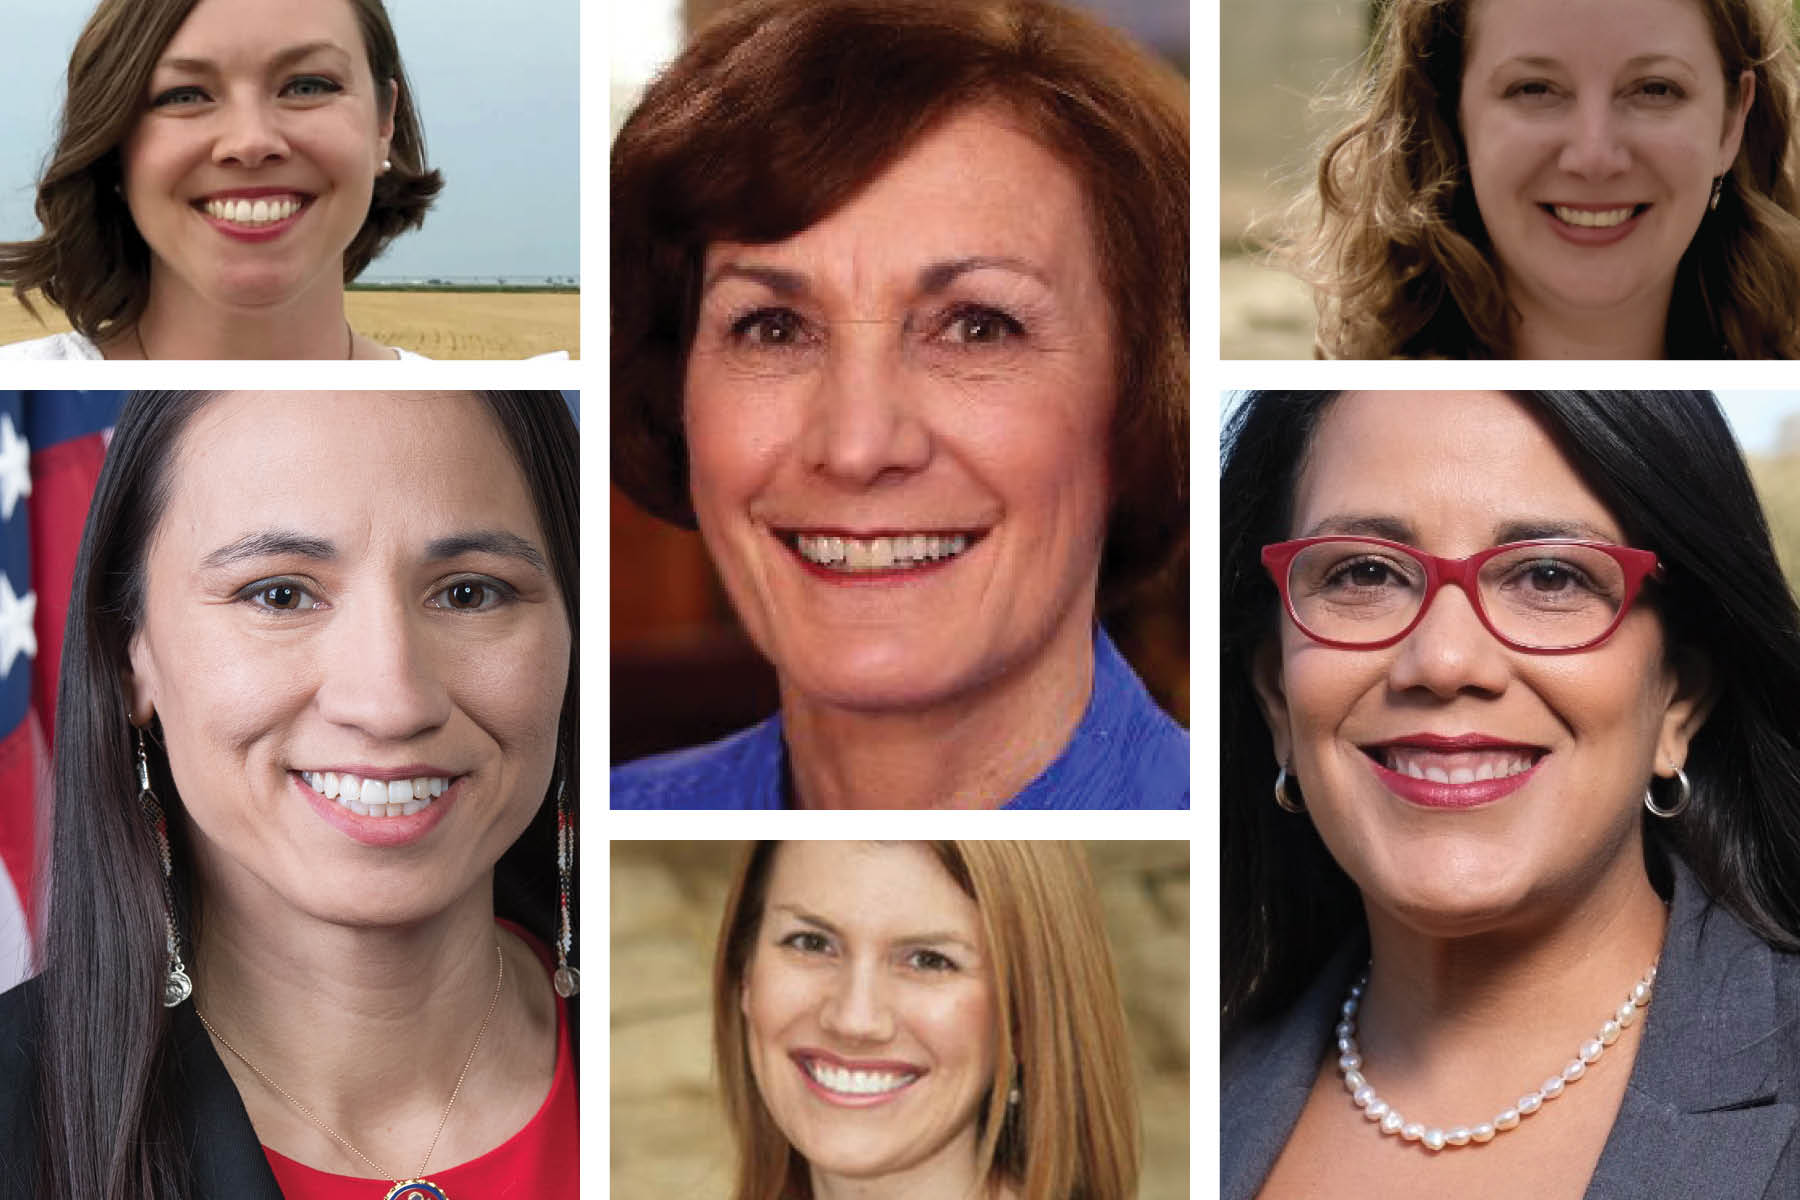 For the first time ever, there will be a woman on the ballot in every congressional race in Kansas. Clockwise from bottom left: Rep. Sharice Davids, Kali Barnett, state Sen. Barbara Bollier, Laura Lombard, Topeka Mayor Michelle De La Isla, all Democrats, and Republican Amanda Adkins. (Composite by Kansas Reflector)